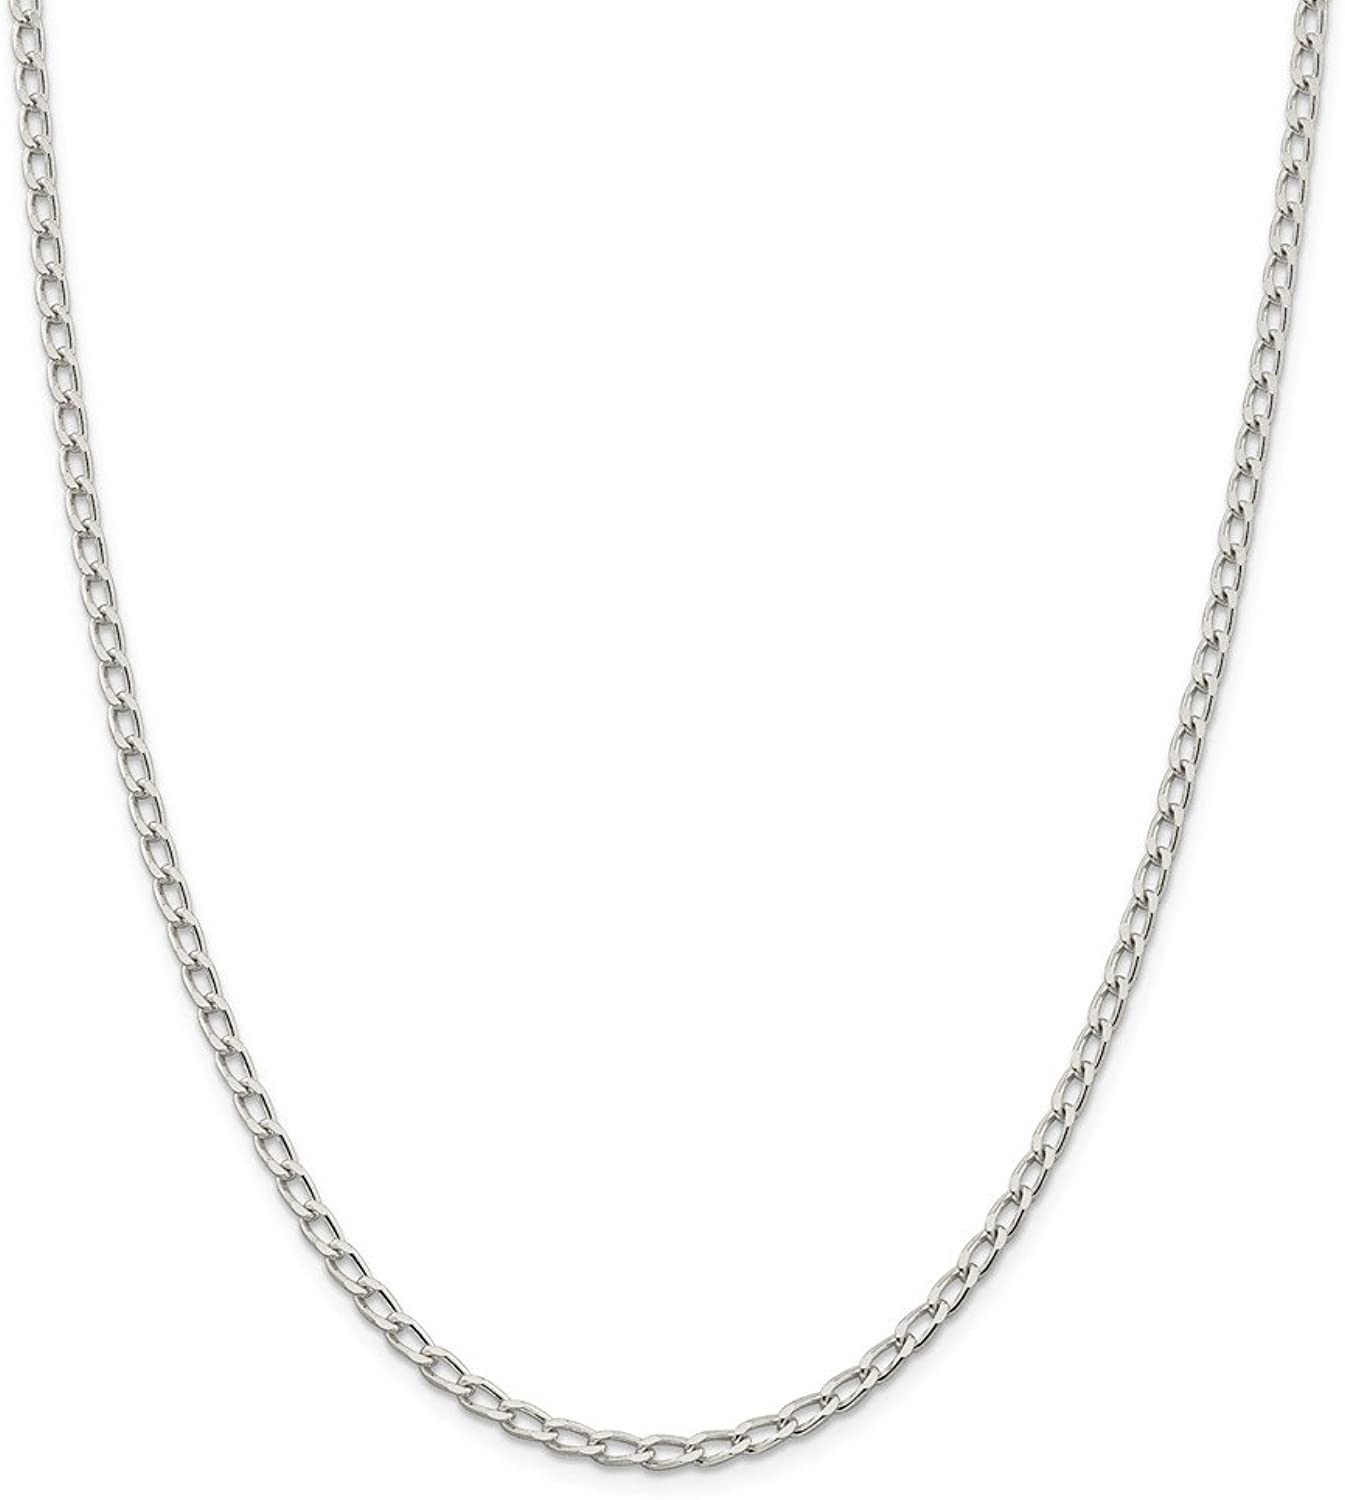 Beautiful Sterling silver 925 sterling Sterling Silver 3.2mm Open Link Chain